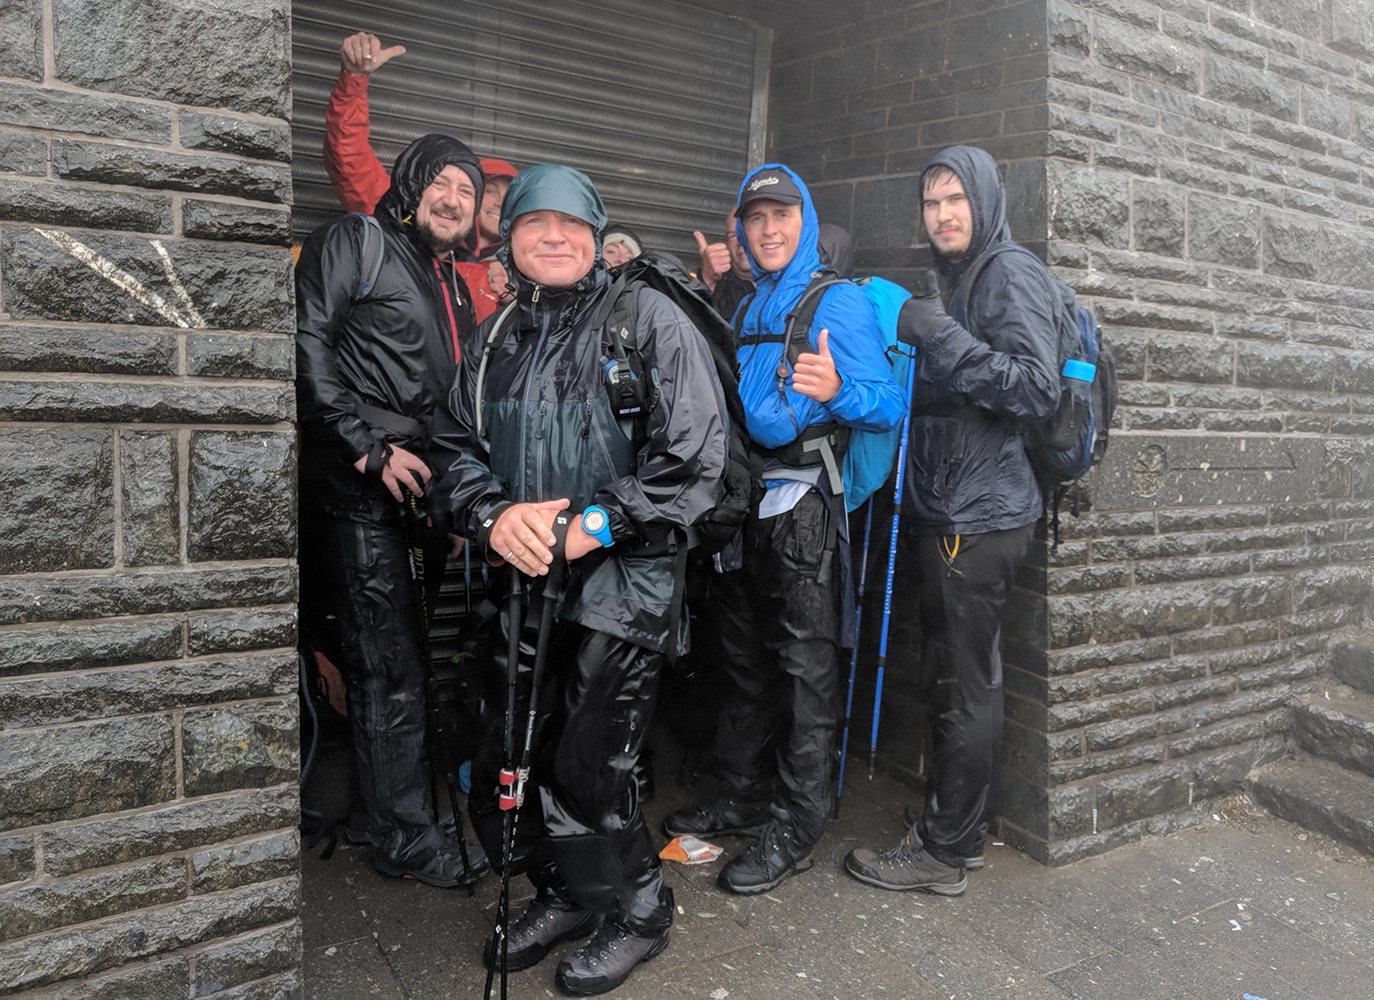 Sheltering from the rain by Snowdon